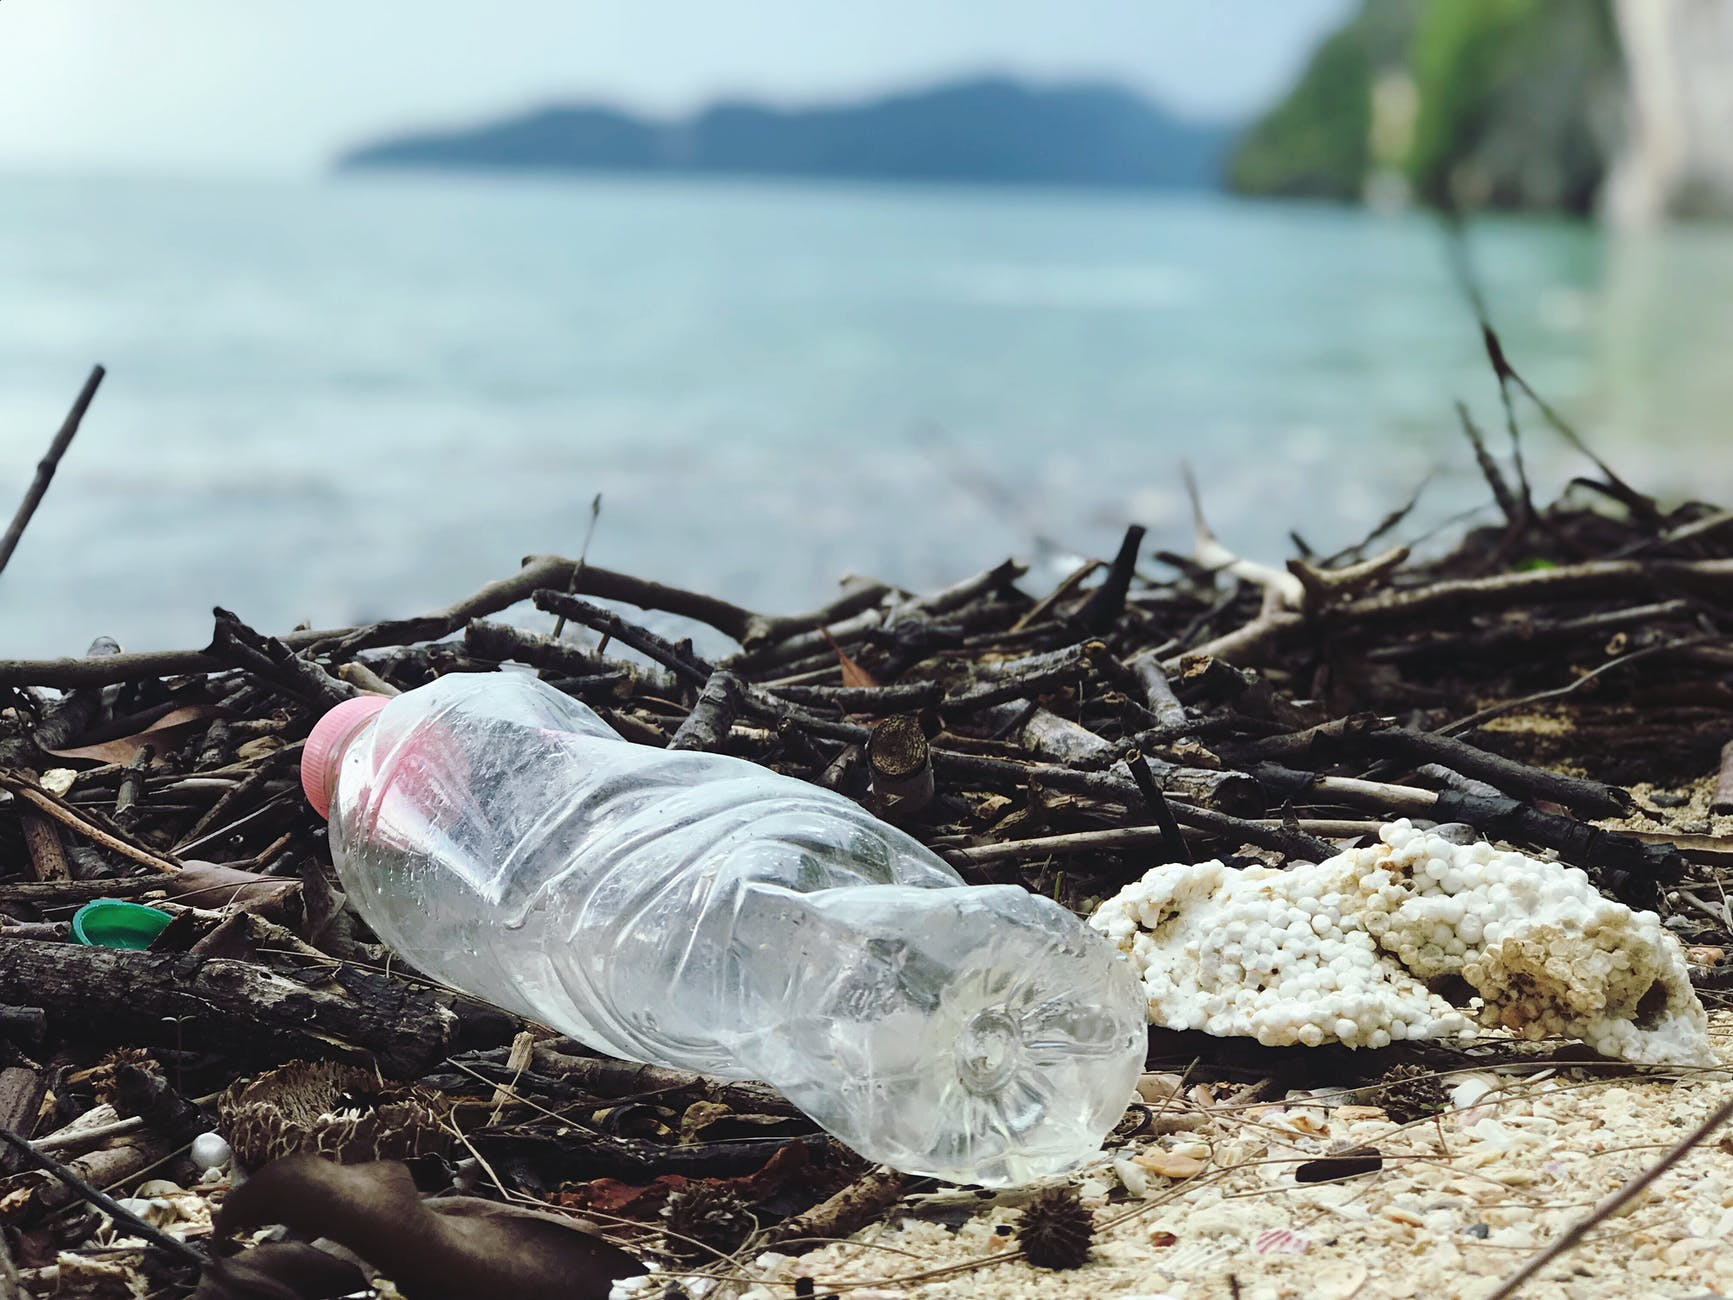 A plastic bottle and some other detritus are very close to the camera and litter the shore. There are sticks mixed with the litter, and the ocean and some mountains are in the background, but out of focus.